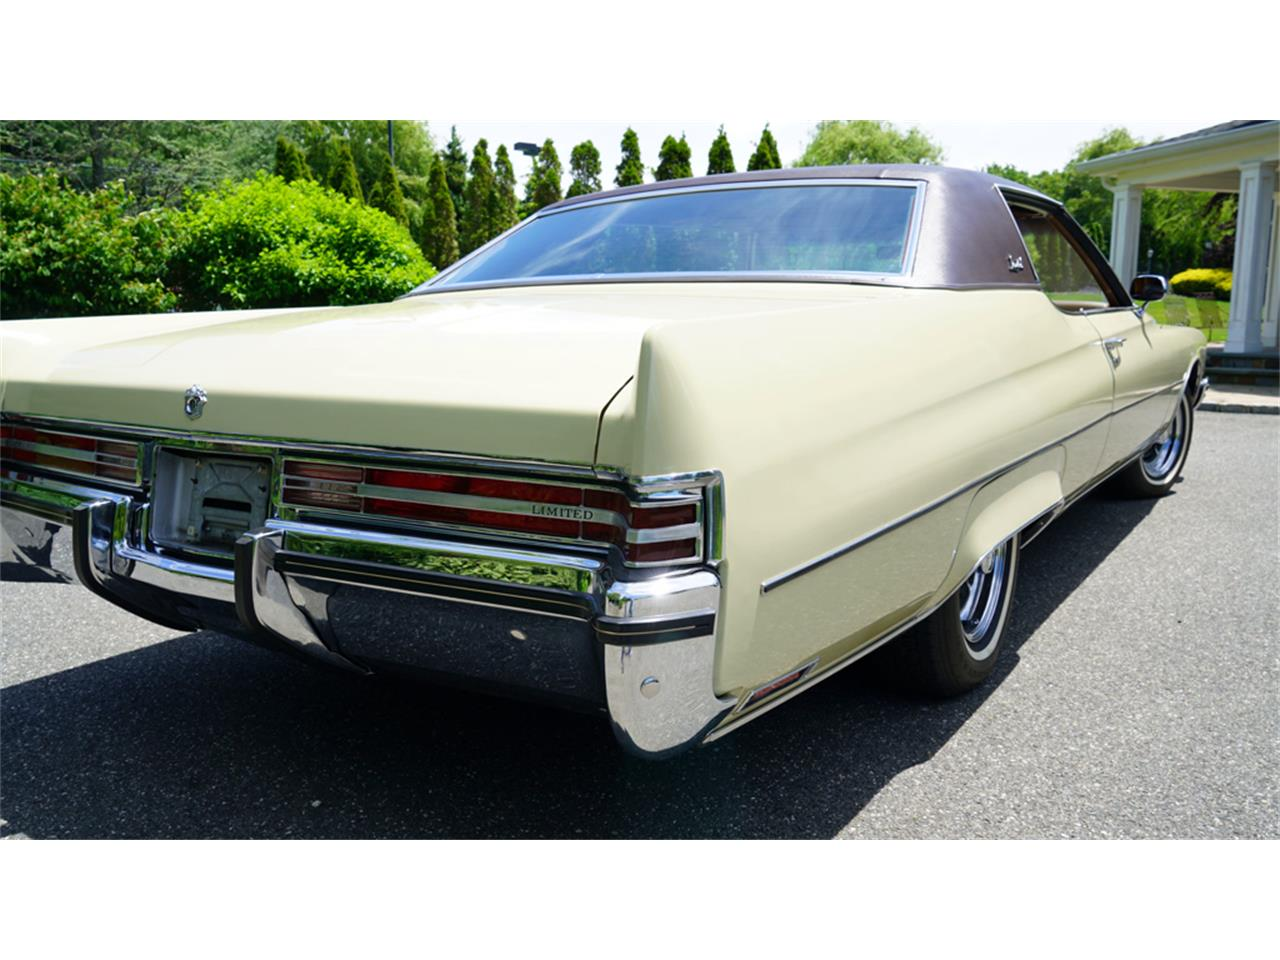 Large Picture of Classic 1972 Buick Electra 225 located in Old Bethpage New York - $32,500.00 - QAJE